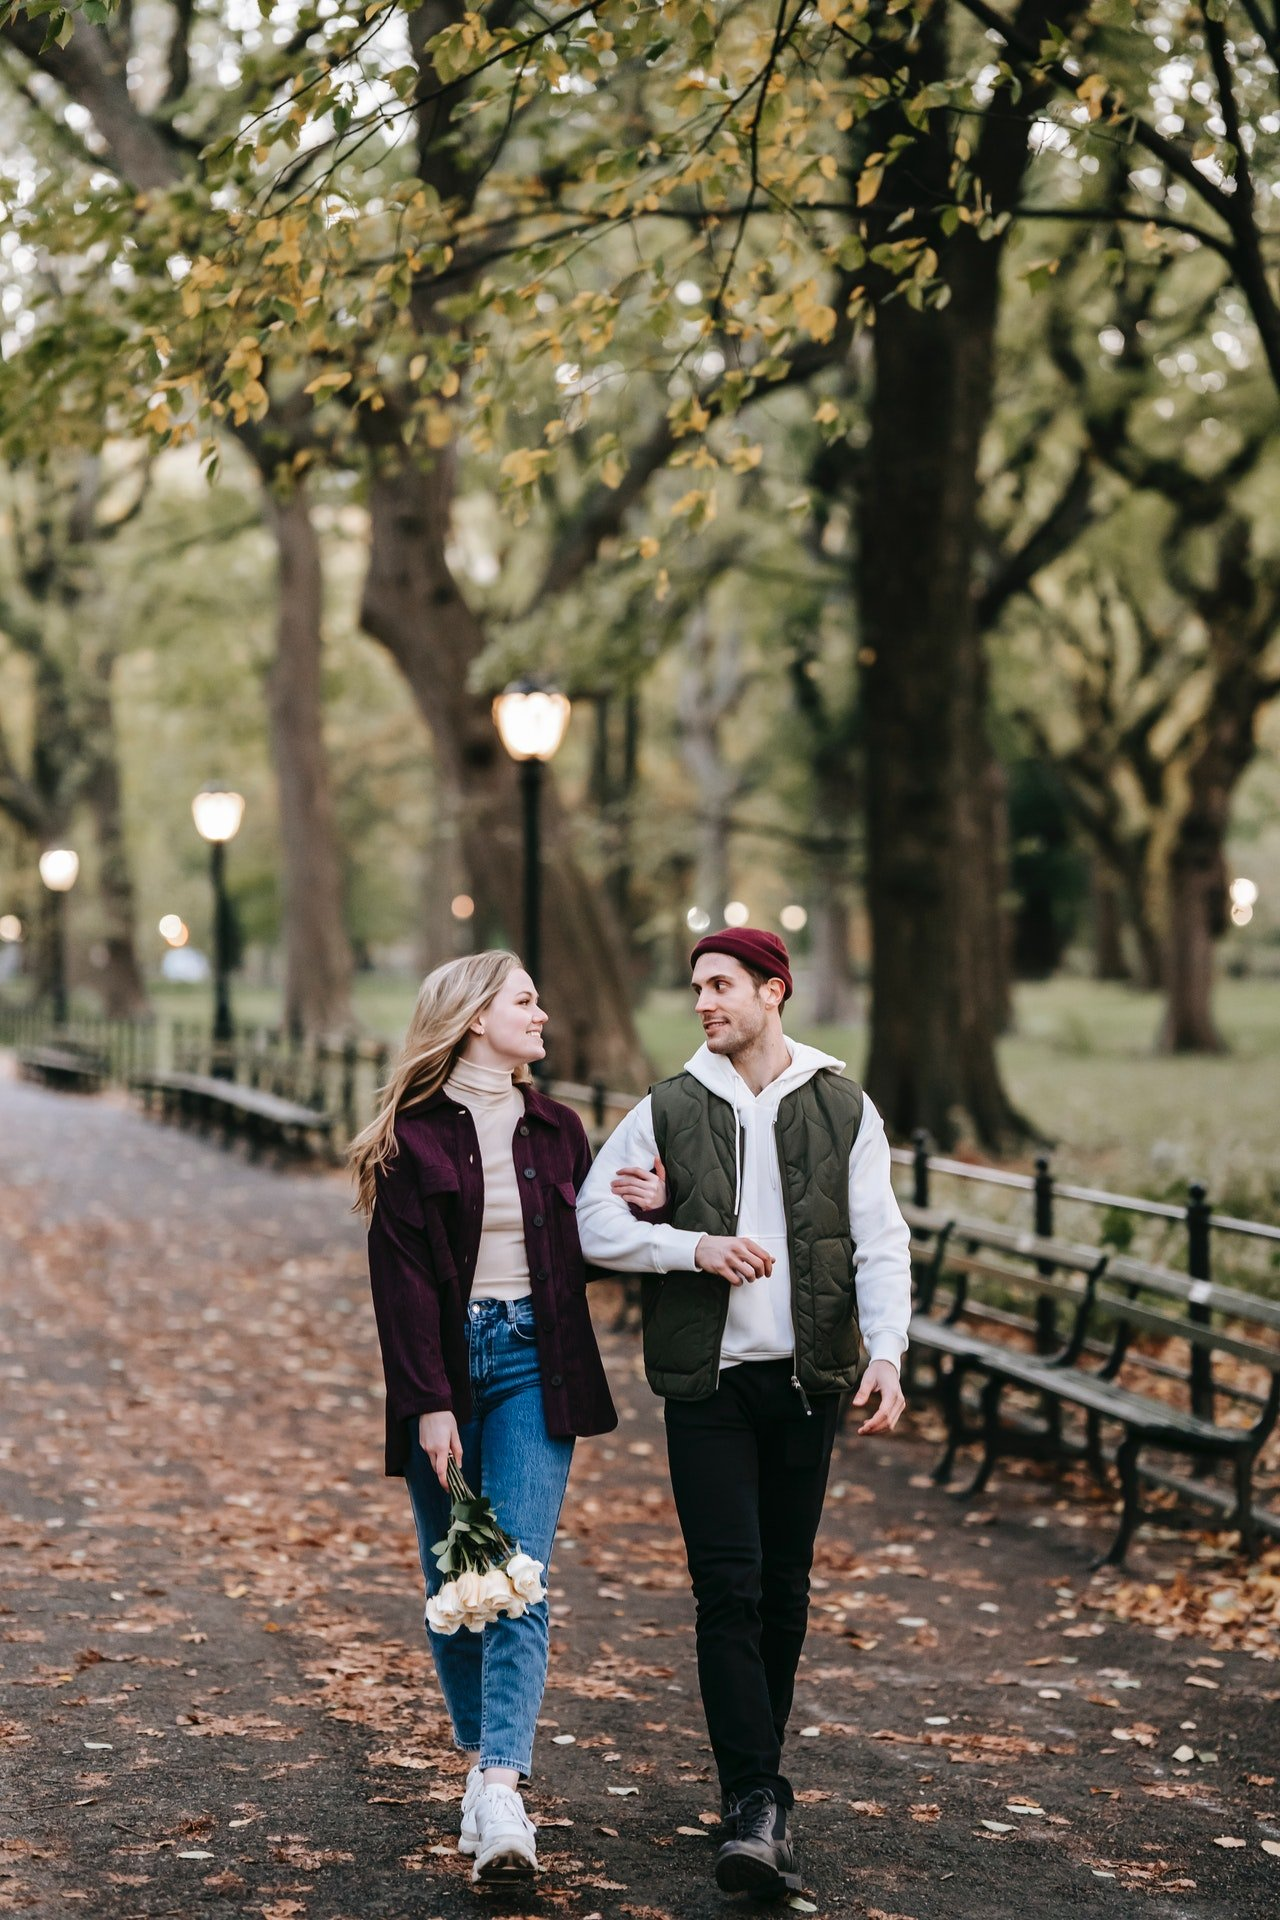 Mark and I walked hand-in-hand in the park.   Source: Pexels